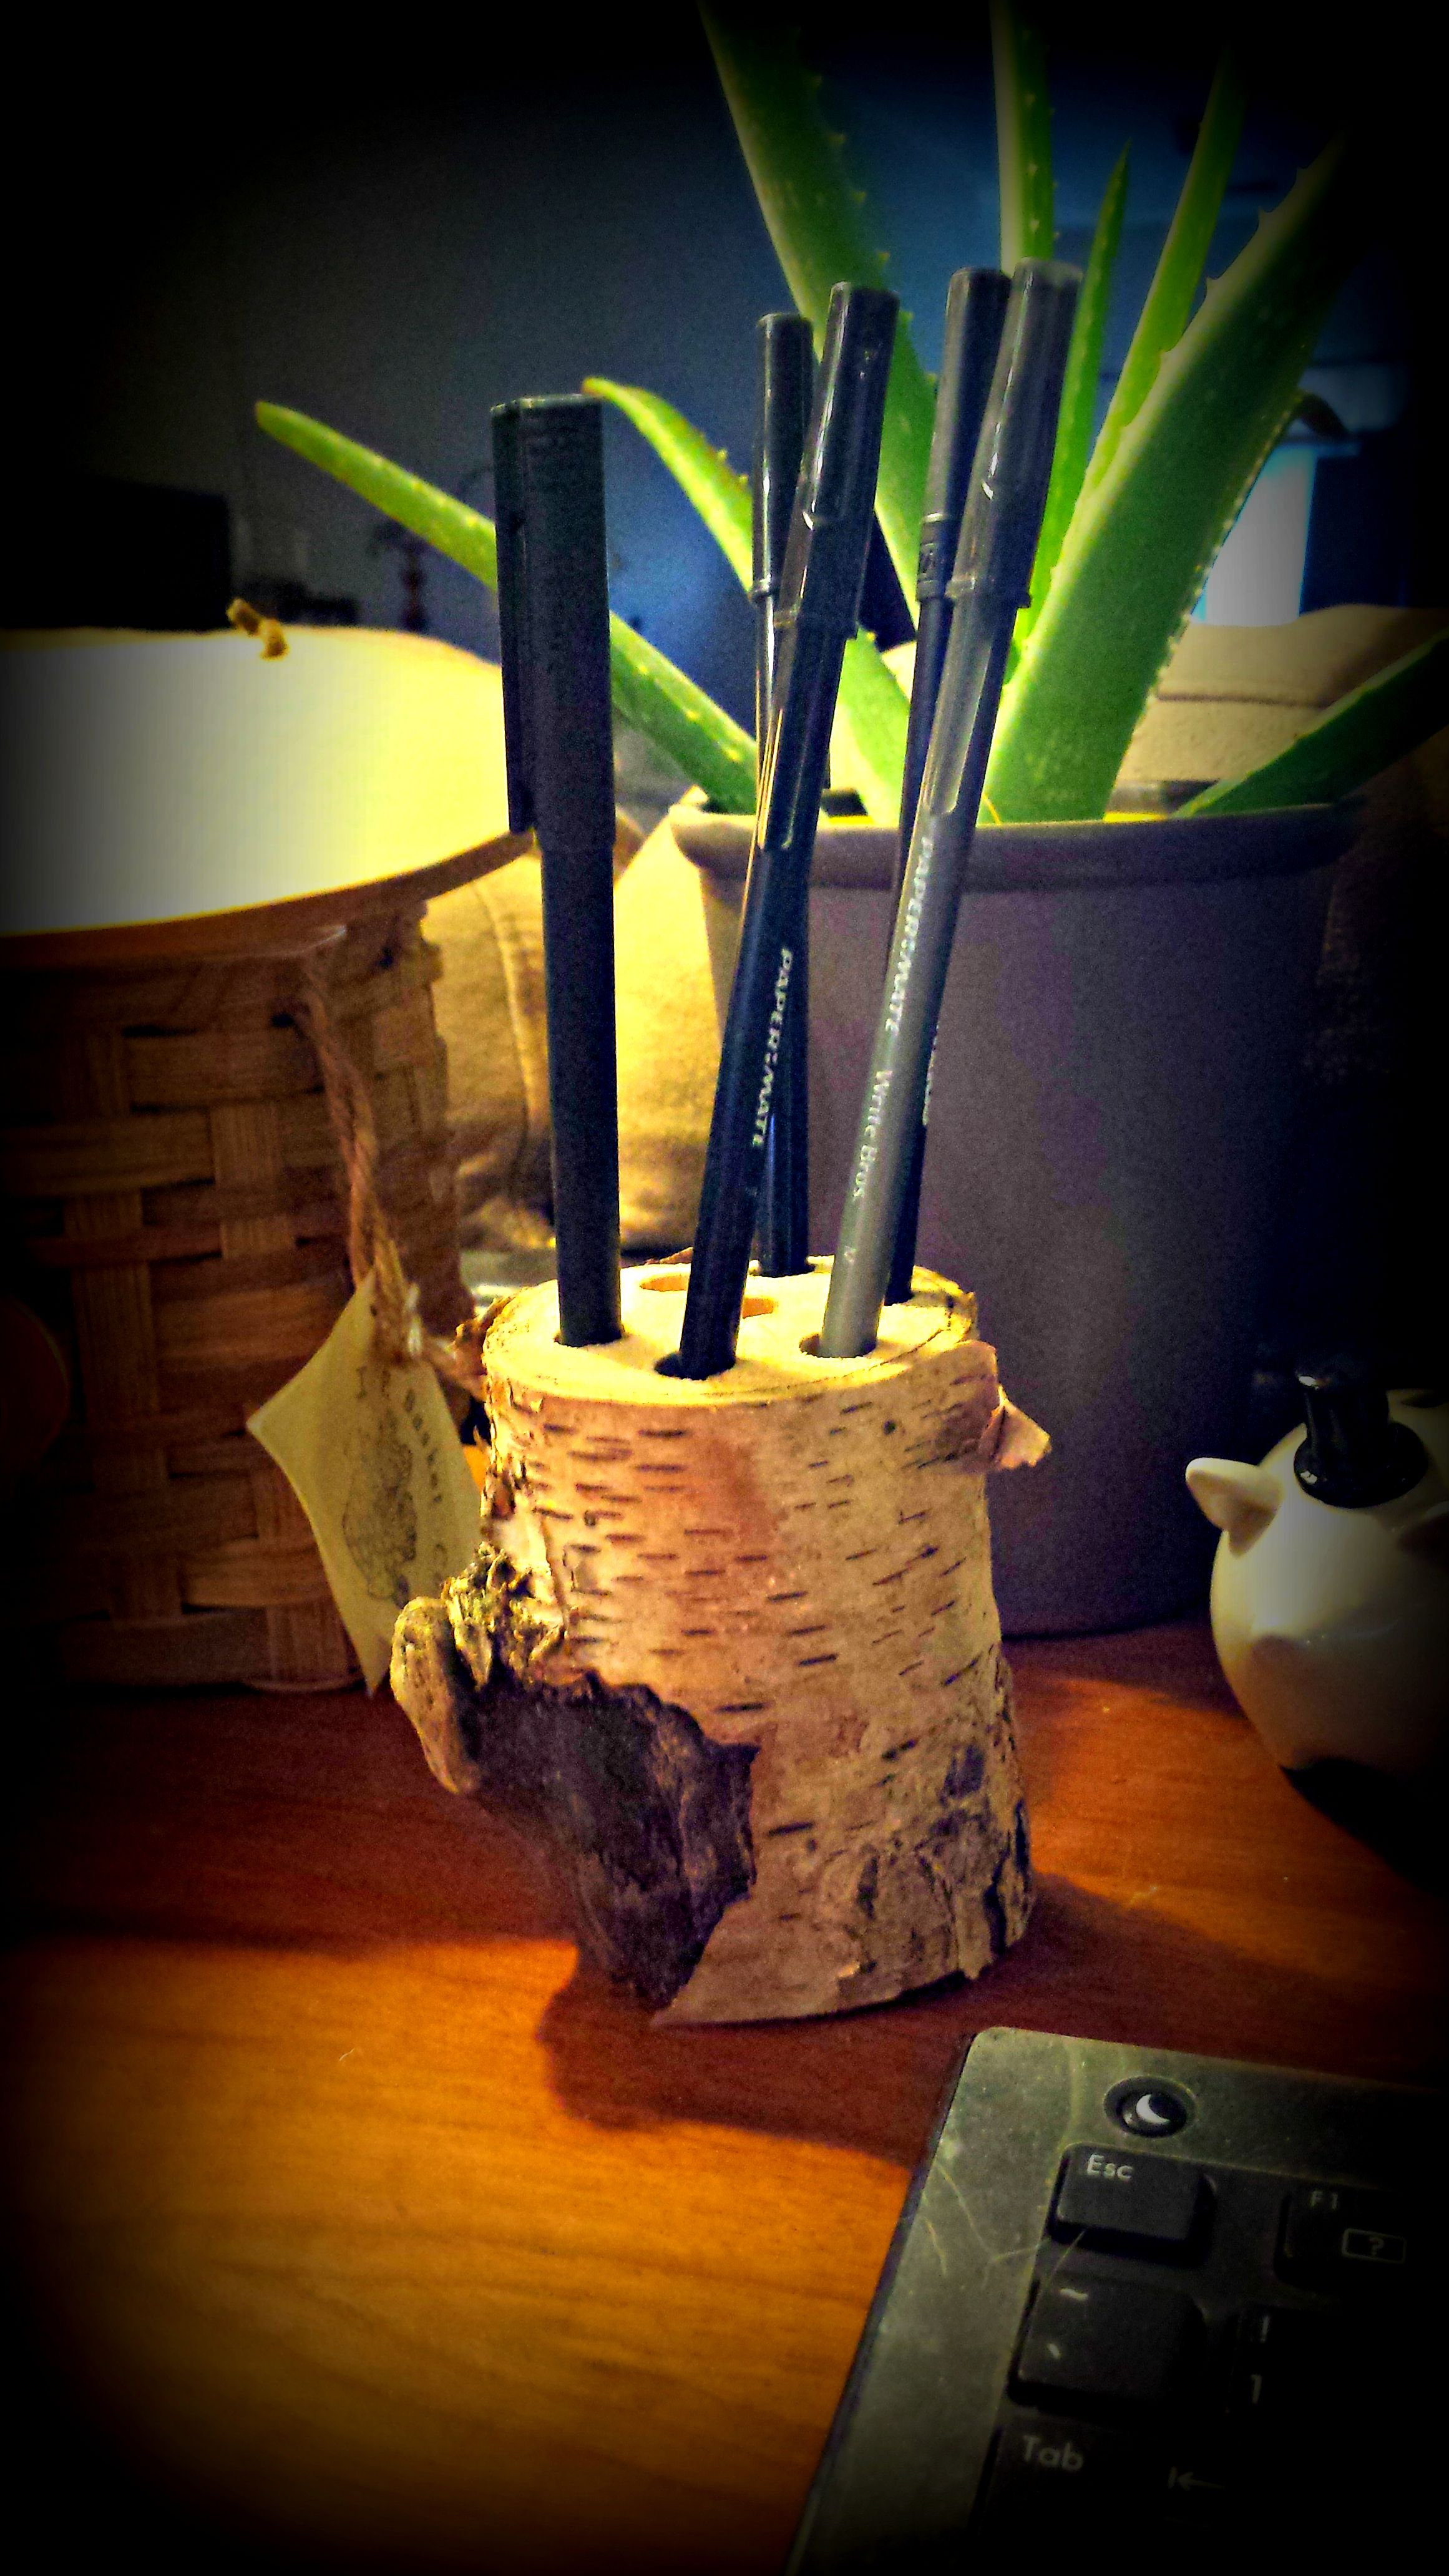 Salvaged driftwood pen pencil holder. Cute for your desk or counter top. Available at C.B. by Claire Haysley.  https://www.facebook.com/clairehaysley